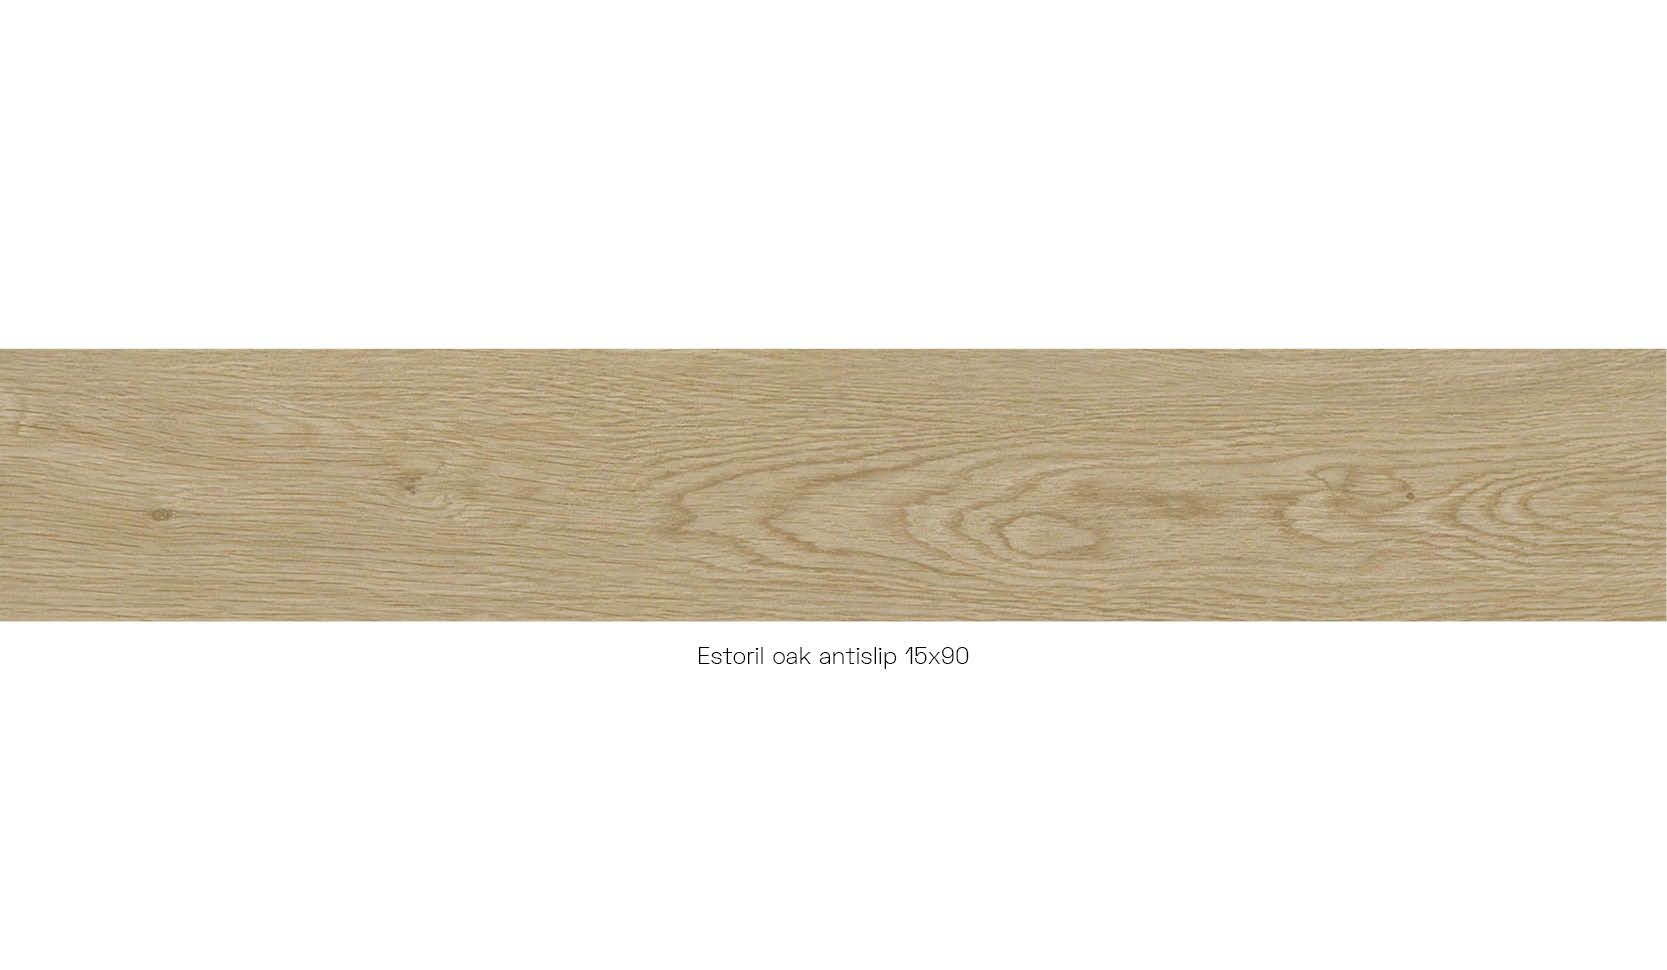 Estoril oak antislip 15 x 90